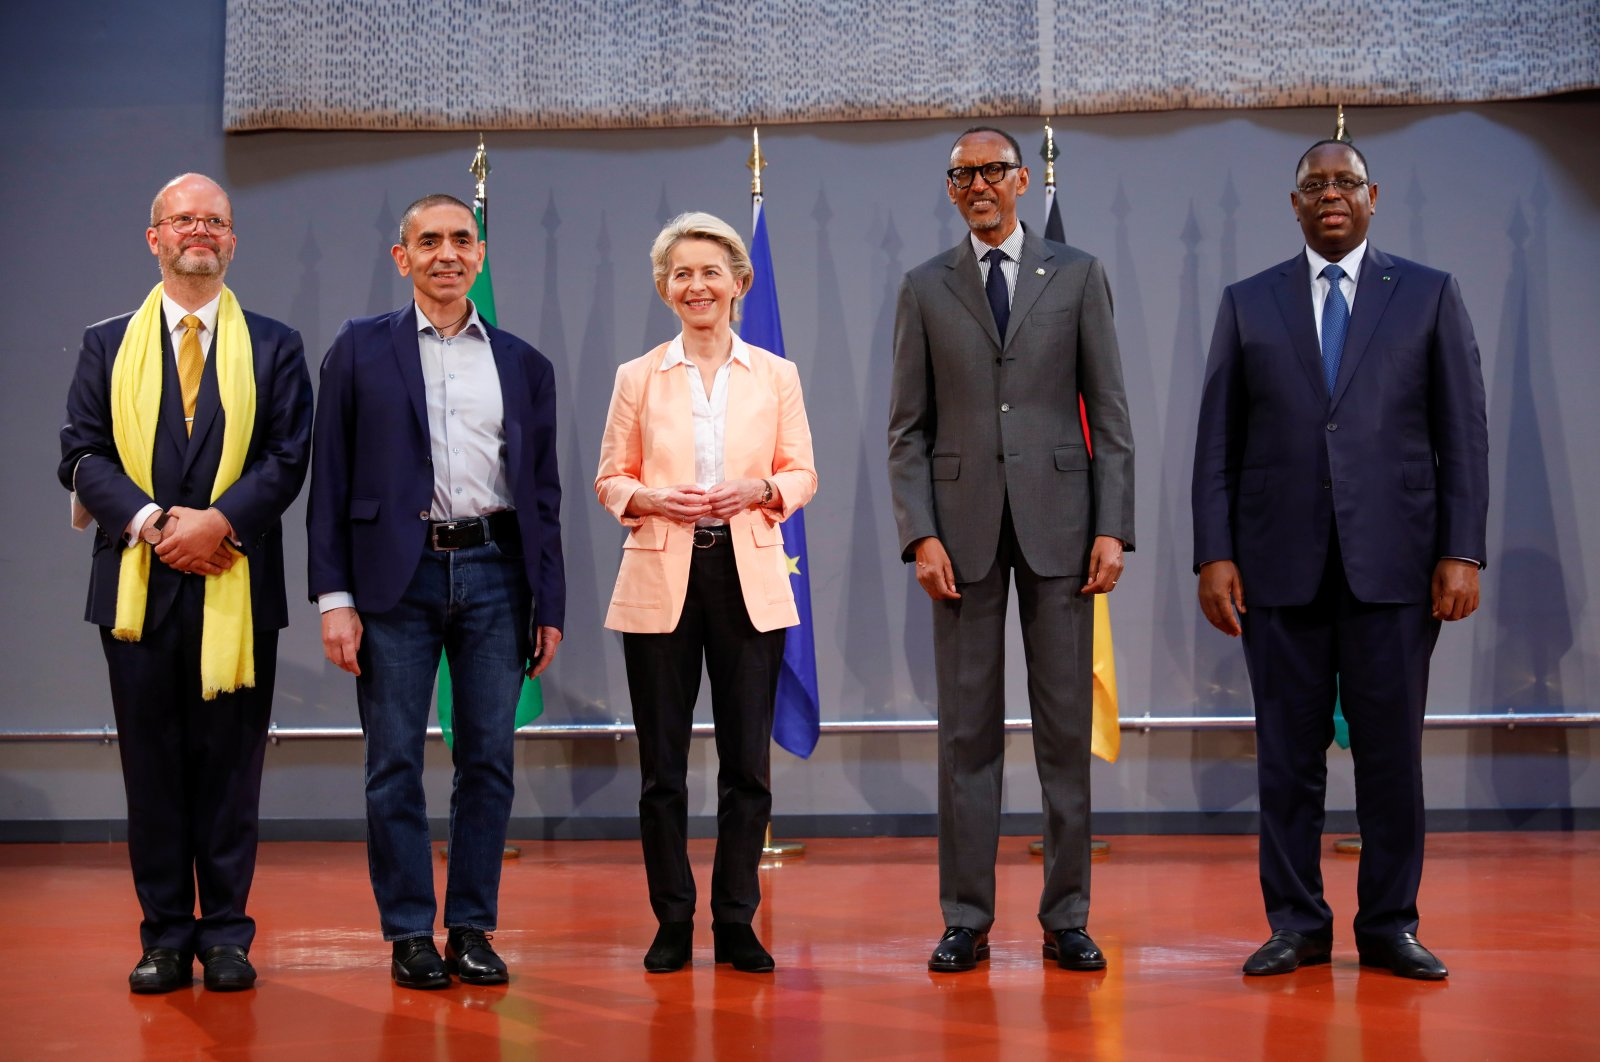 From left to right: CEO of kENUP Foundation, Holm Keller; CEO and co-founder of BioNTech, Uğur Şahin; European Commission President Ursula von der Leyen; Rwandan President Paul Kagame and Senegalese President Macky Sall in Berlin, Germany, Aug. 27, 2021. (Reuters Photo)